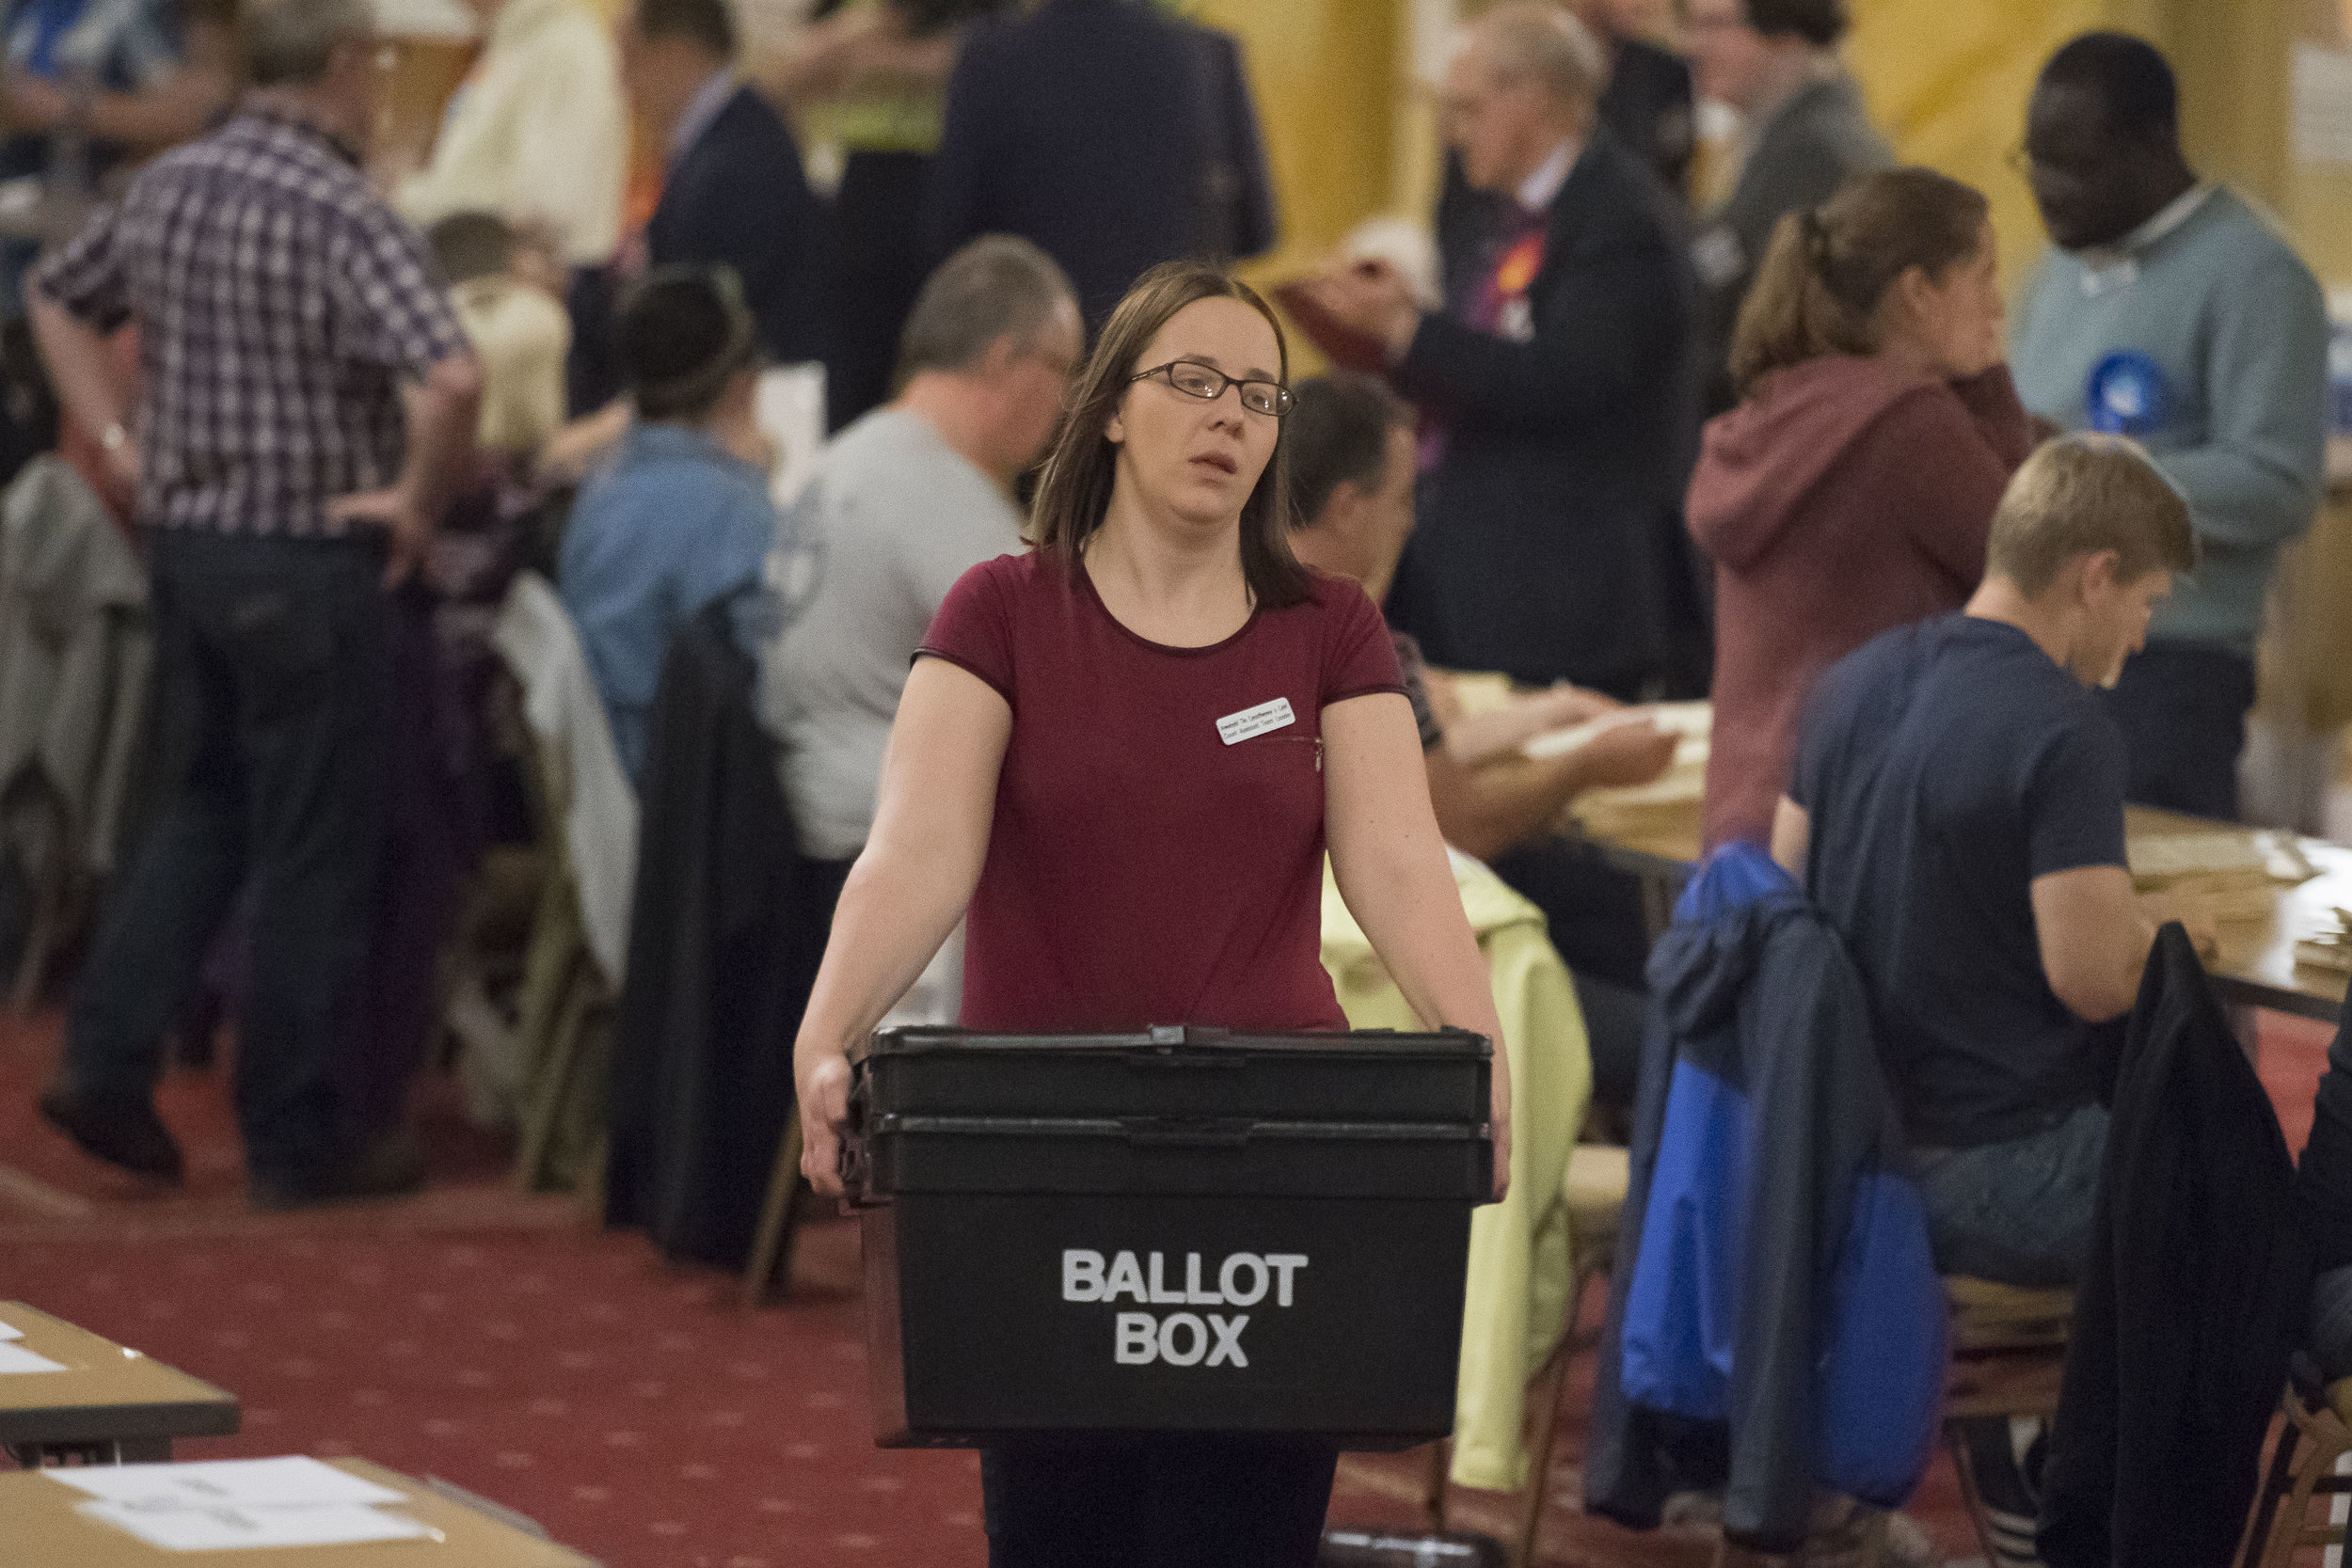 CARDIFF, UNITED KINGDOM - JUNE 08: A woman carries boxes of ballot papers at City Hall on June 8, 2017 in Cardiff, United Kingdom. After a snap election was called, the United Kingdom went to the polls yesterday following a closely fought election. The results from across the country are being counted and an overall result is expected in the early hours. (Photo by Matthew Horwood/Getty Images)